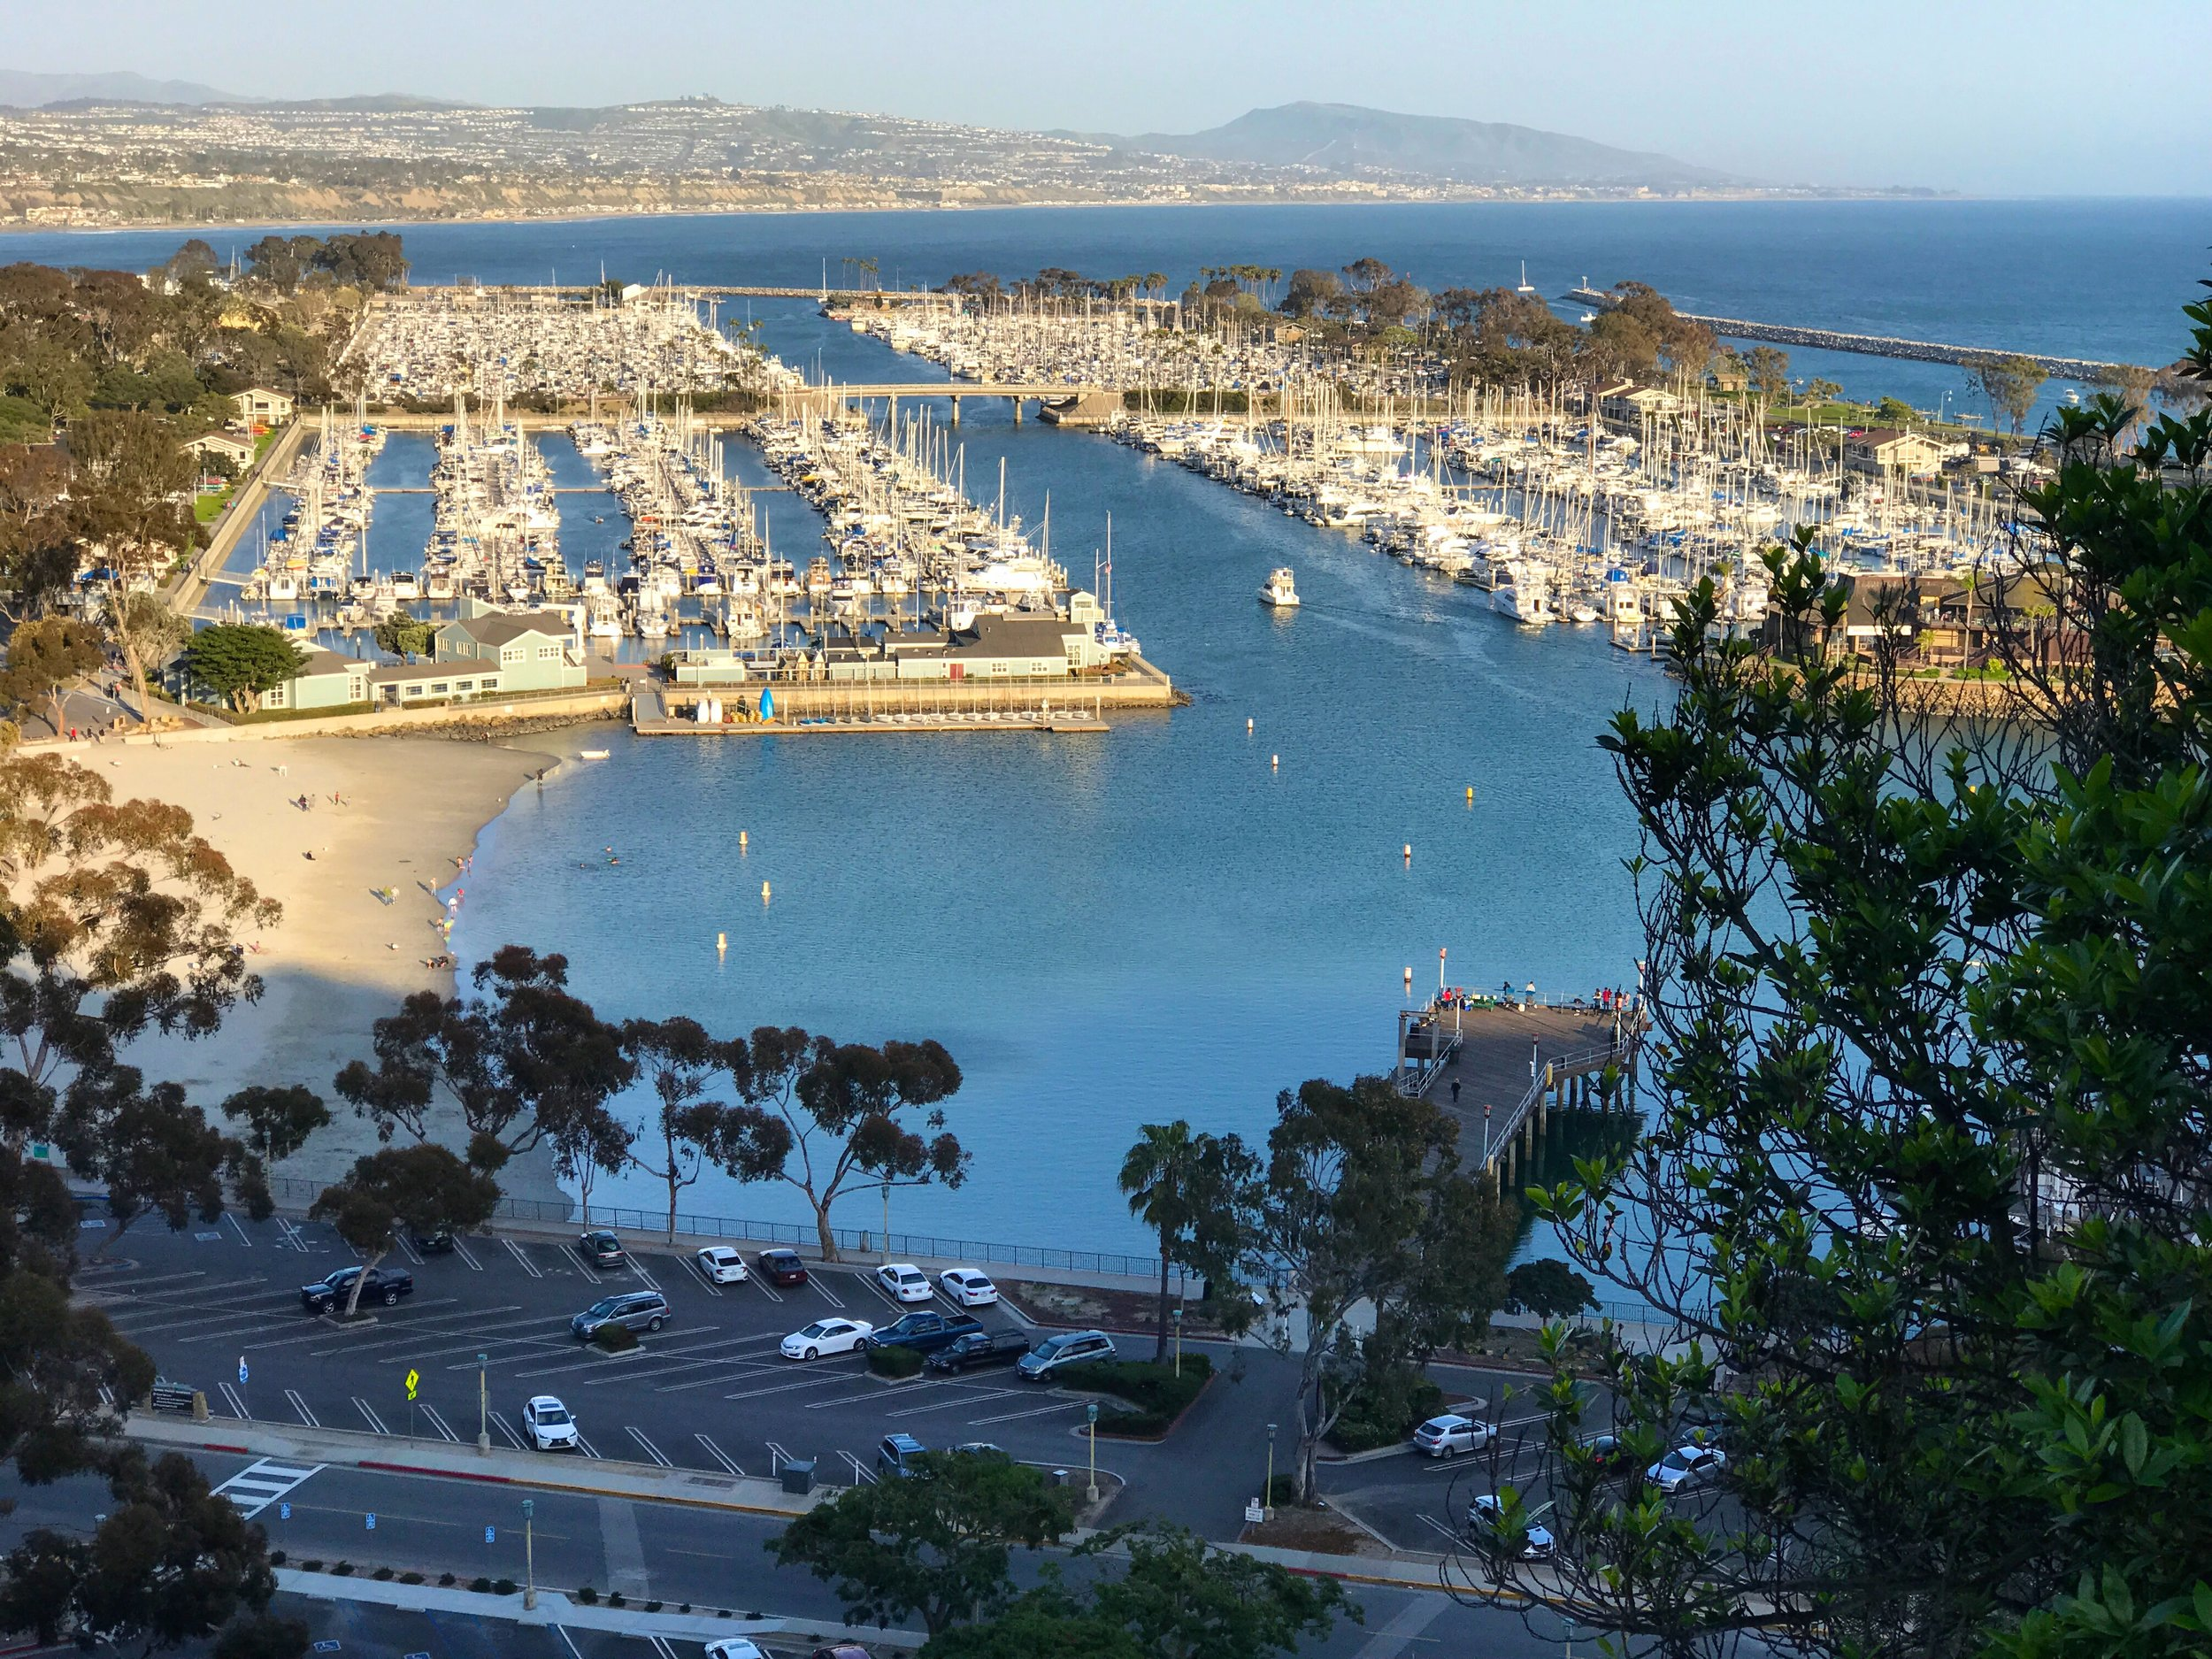 Dana Point Harbor - where I have been staying with Betsy and Barry